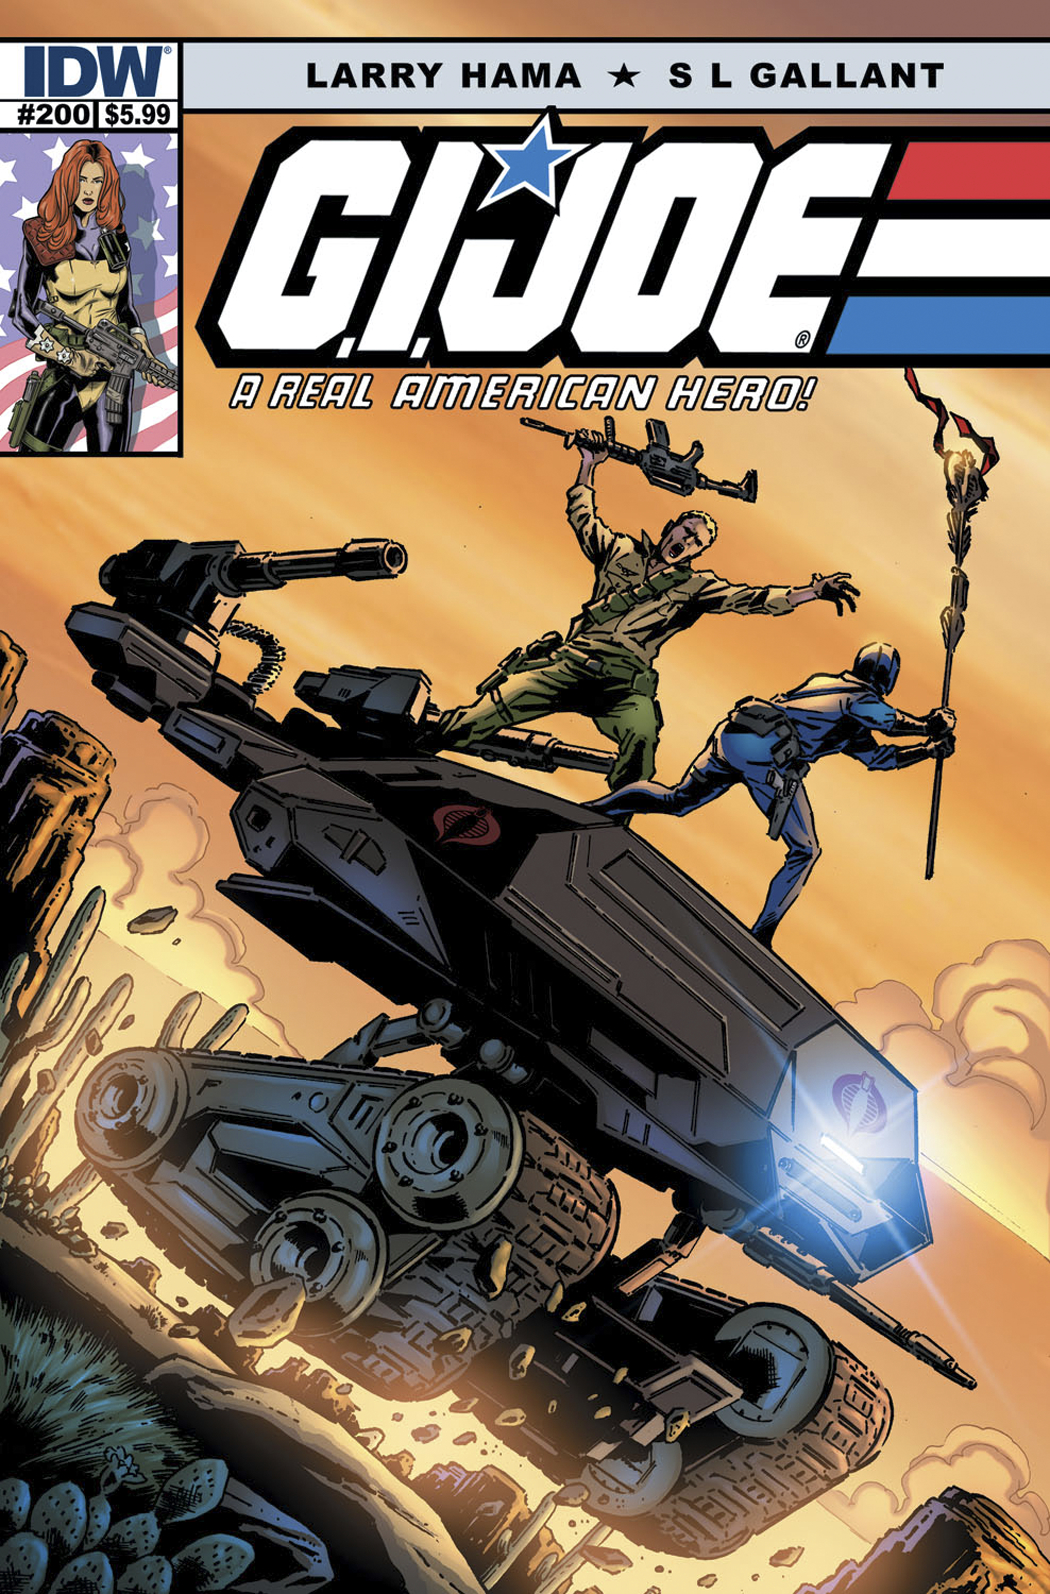 GI JOE A REAL AMERICAN HERO #200